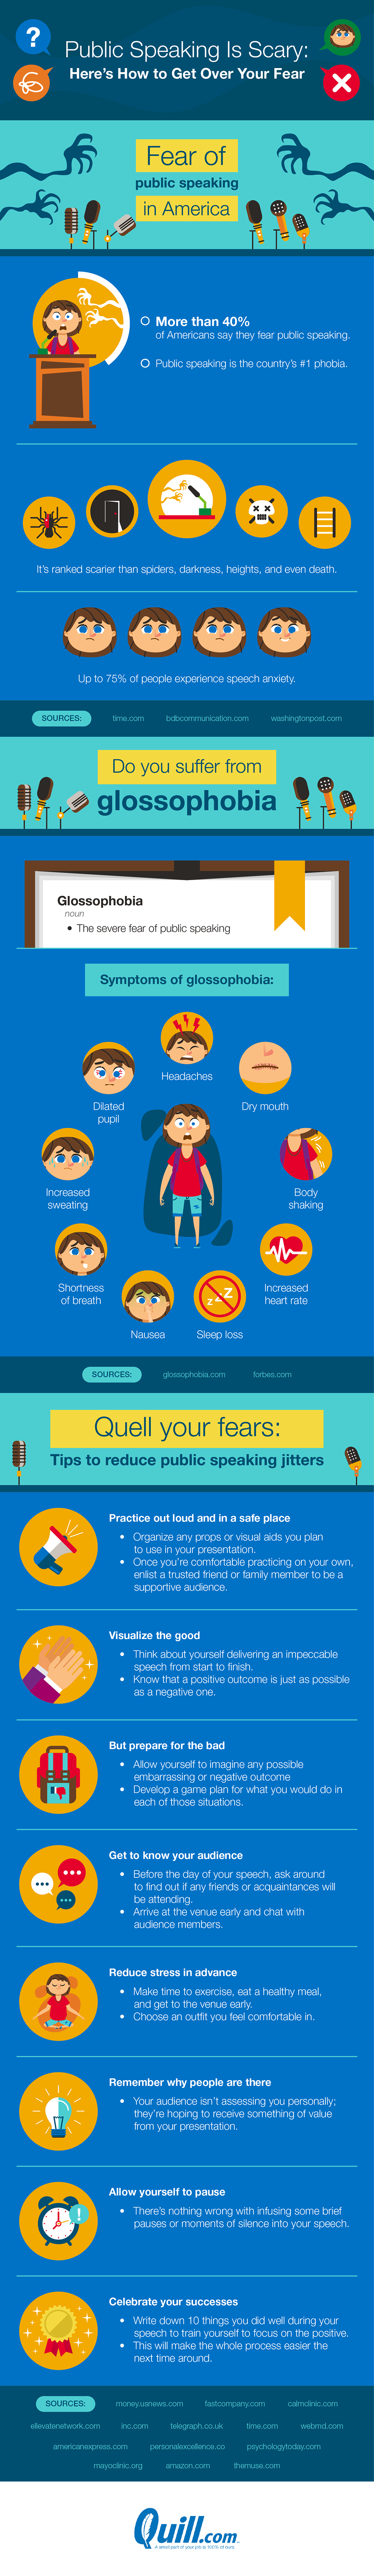 7 Ways to Overcome Fear of Public Speaking - Infographic